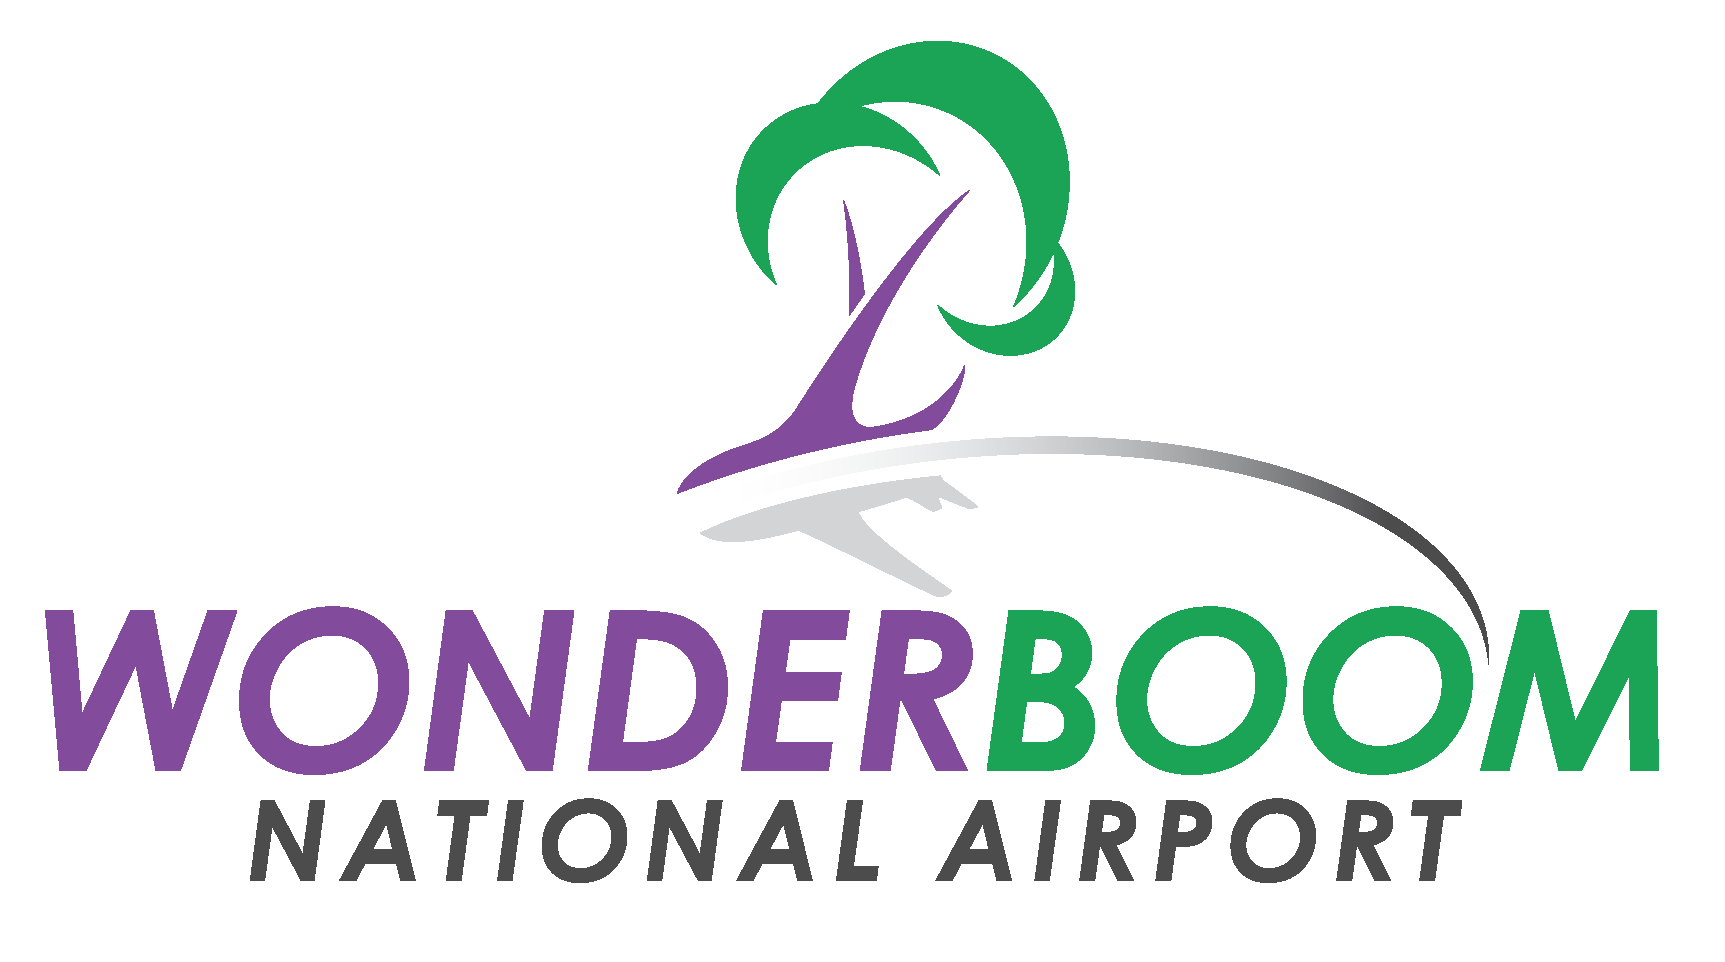 Wonderboom National Airport